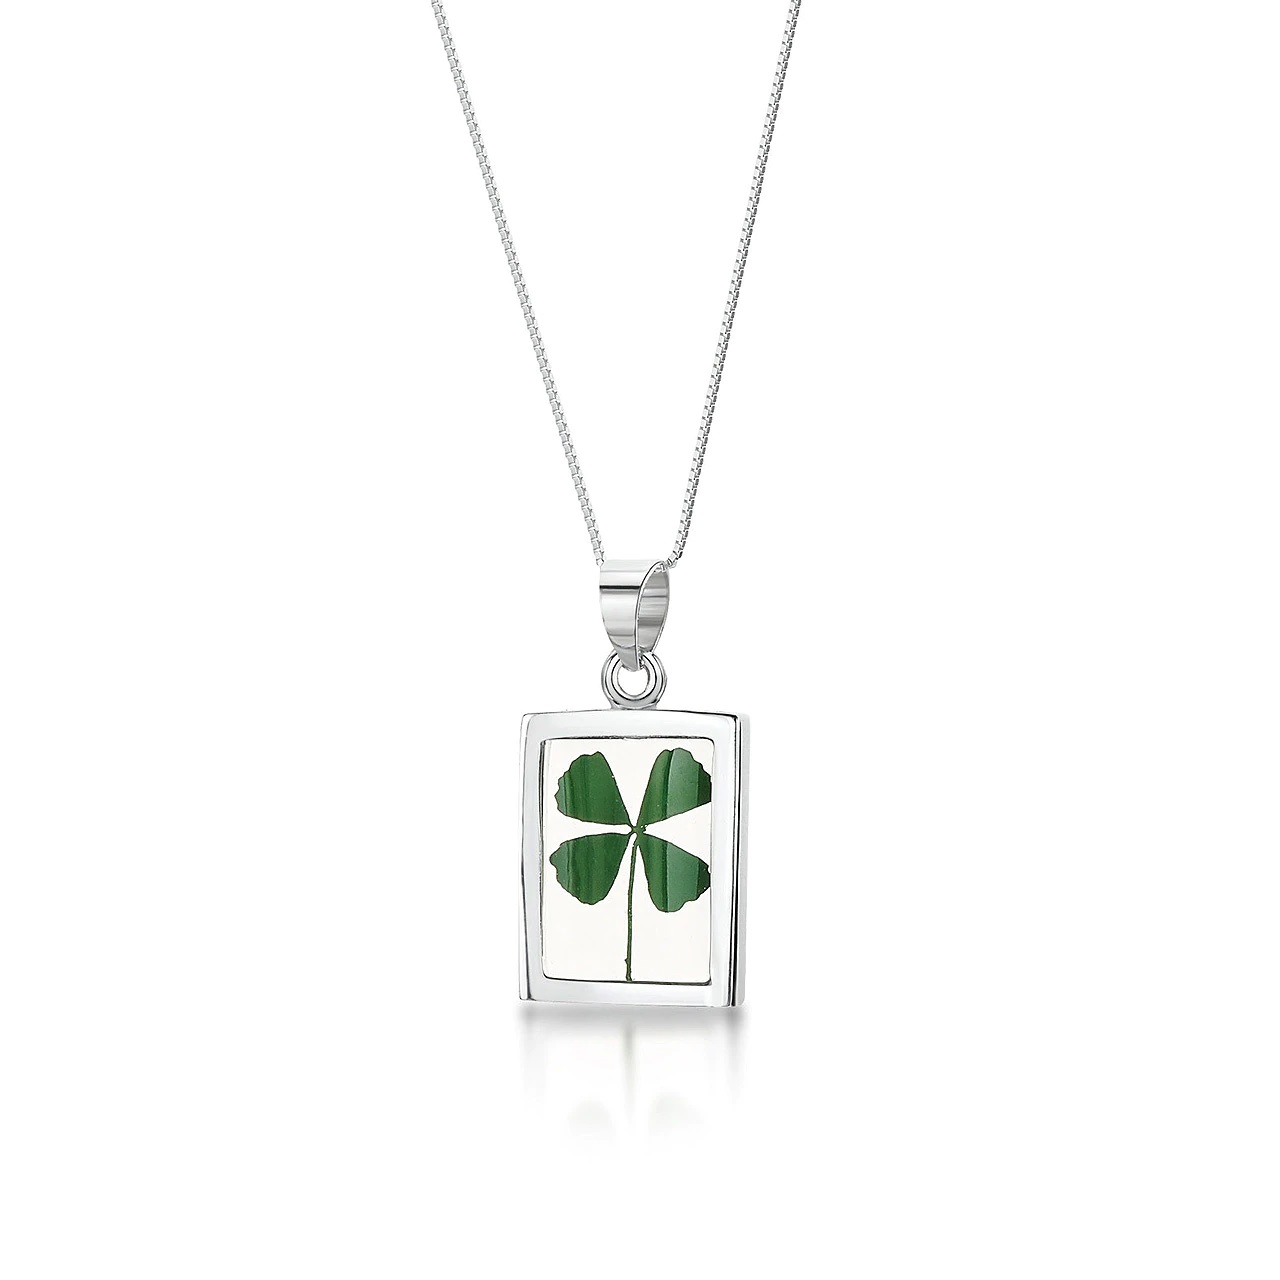 Necklace for Her - Silver Four Leaf Clover